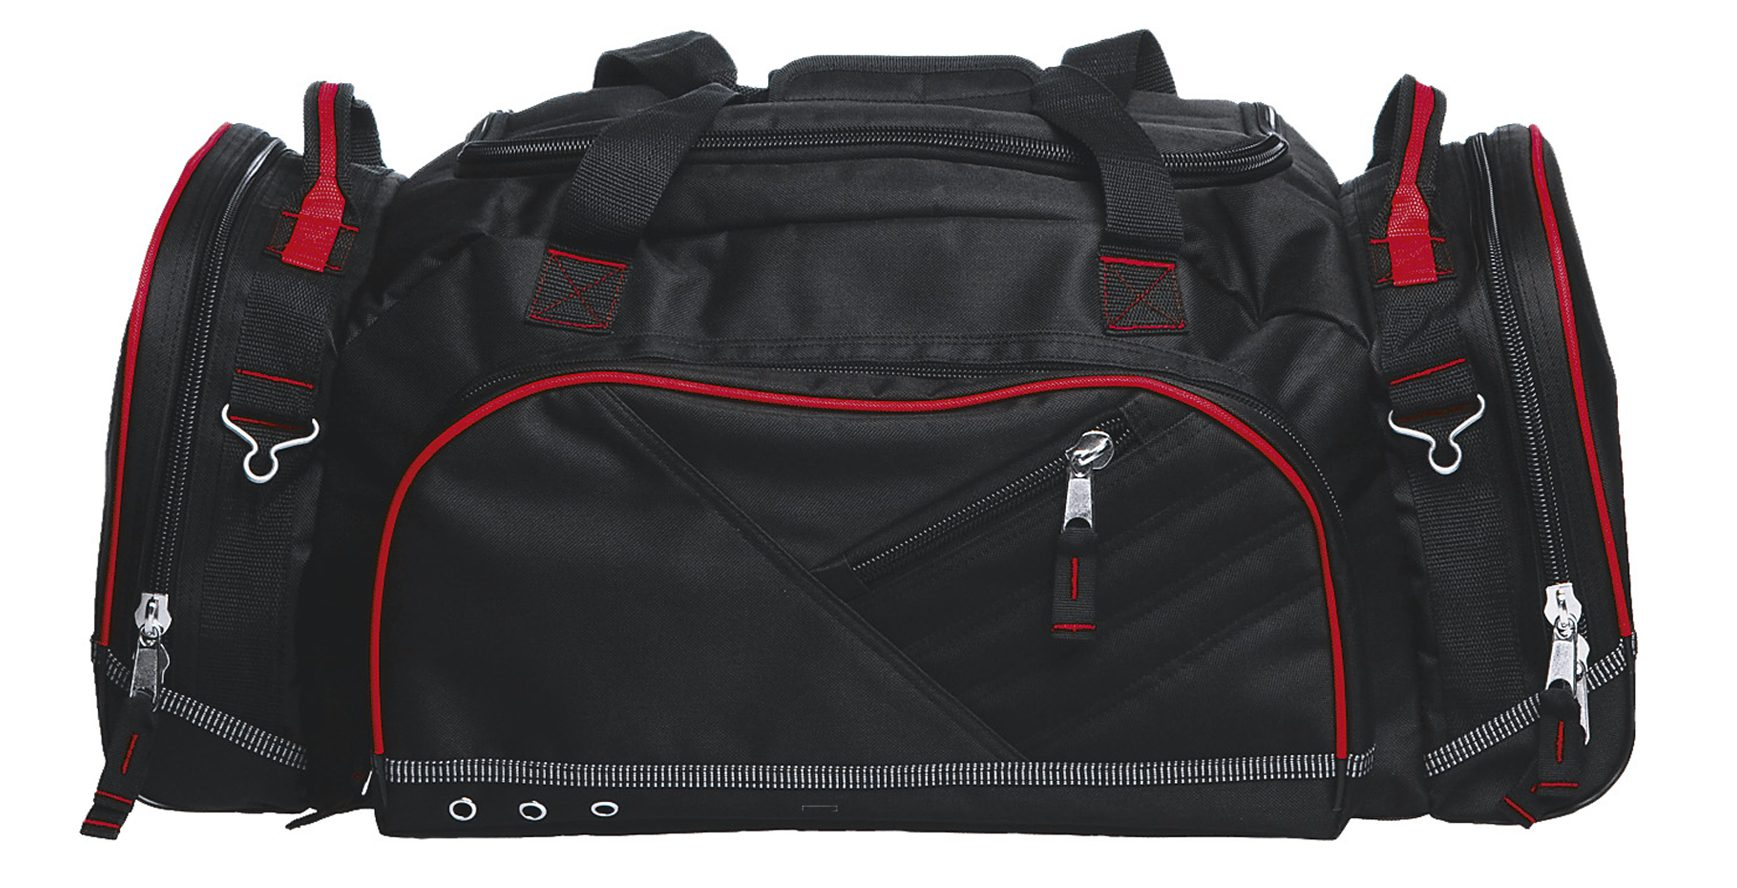 Recon Sports Bag - BRCS - Black/Red